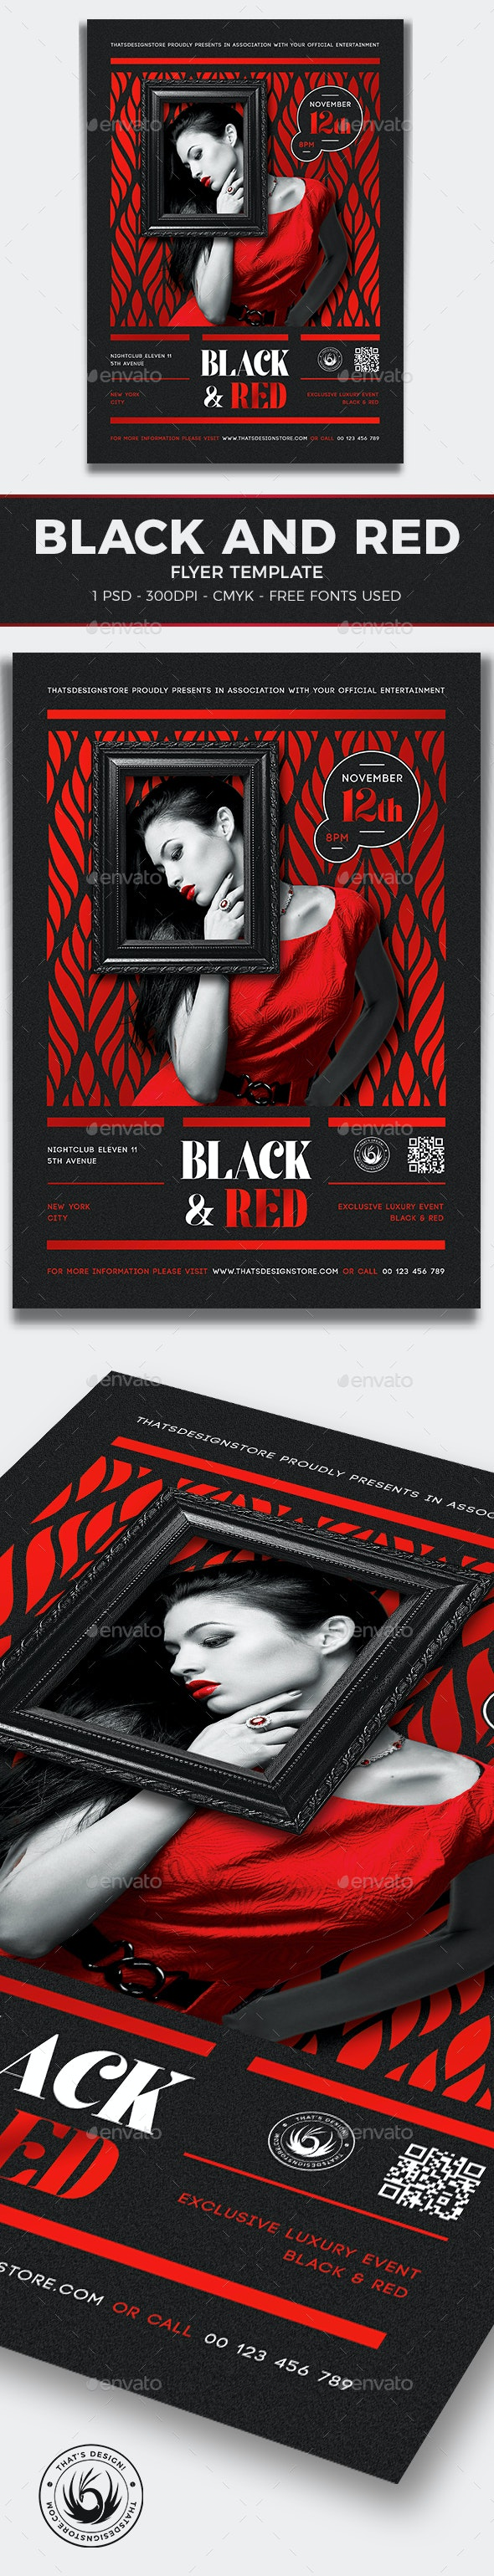 Black and Red Flyer Template V6 - Clubs & Parties Events